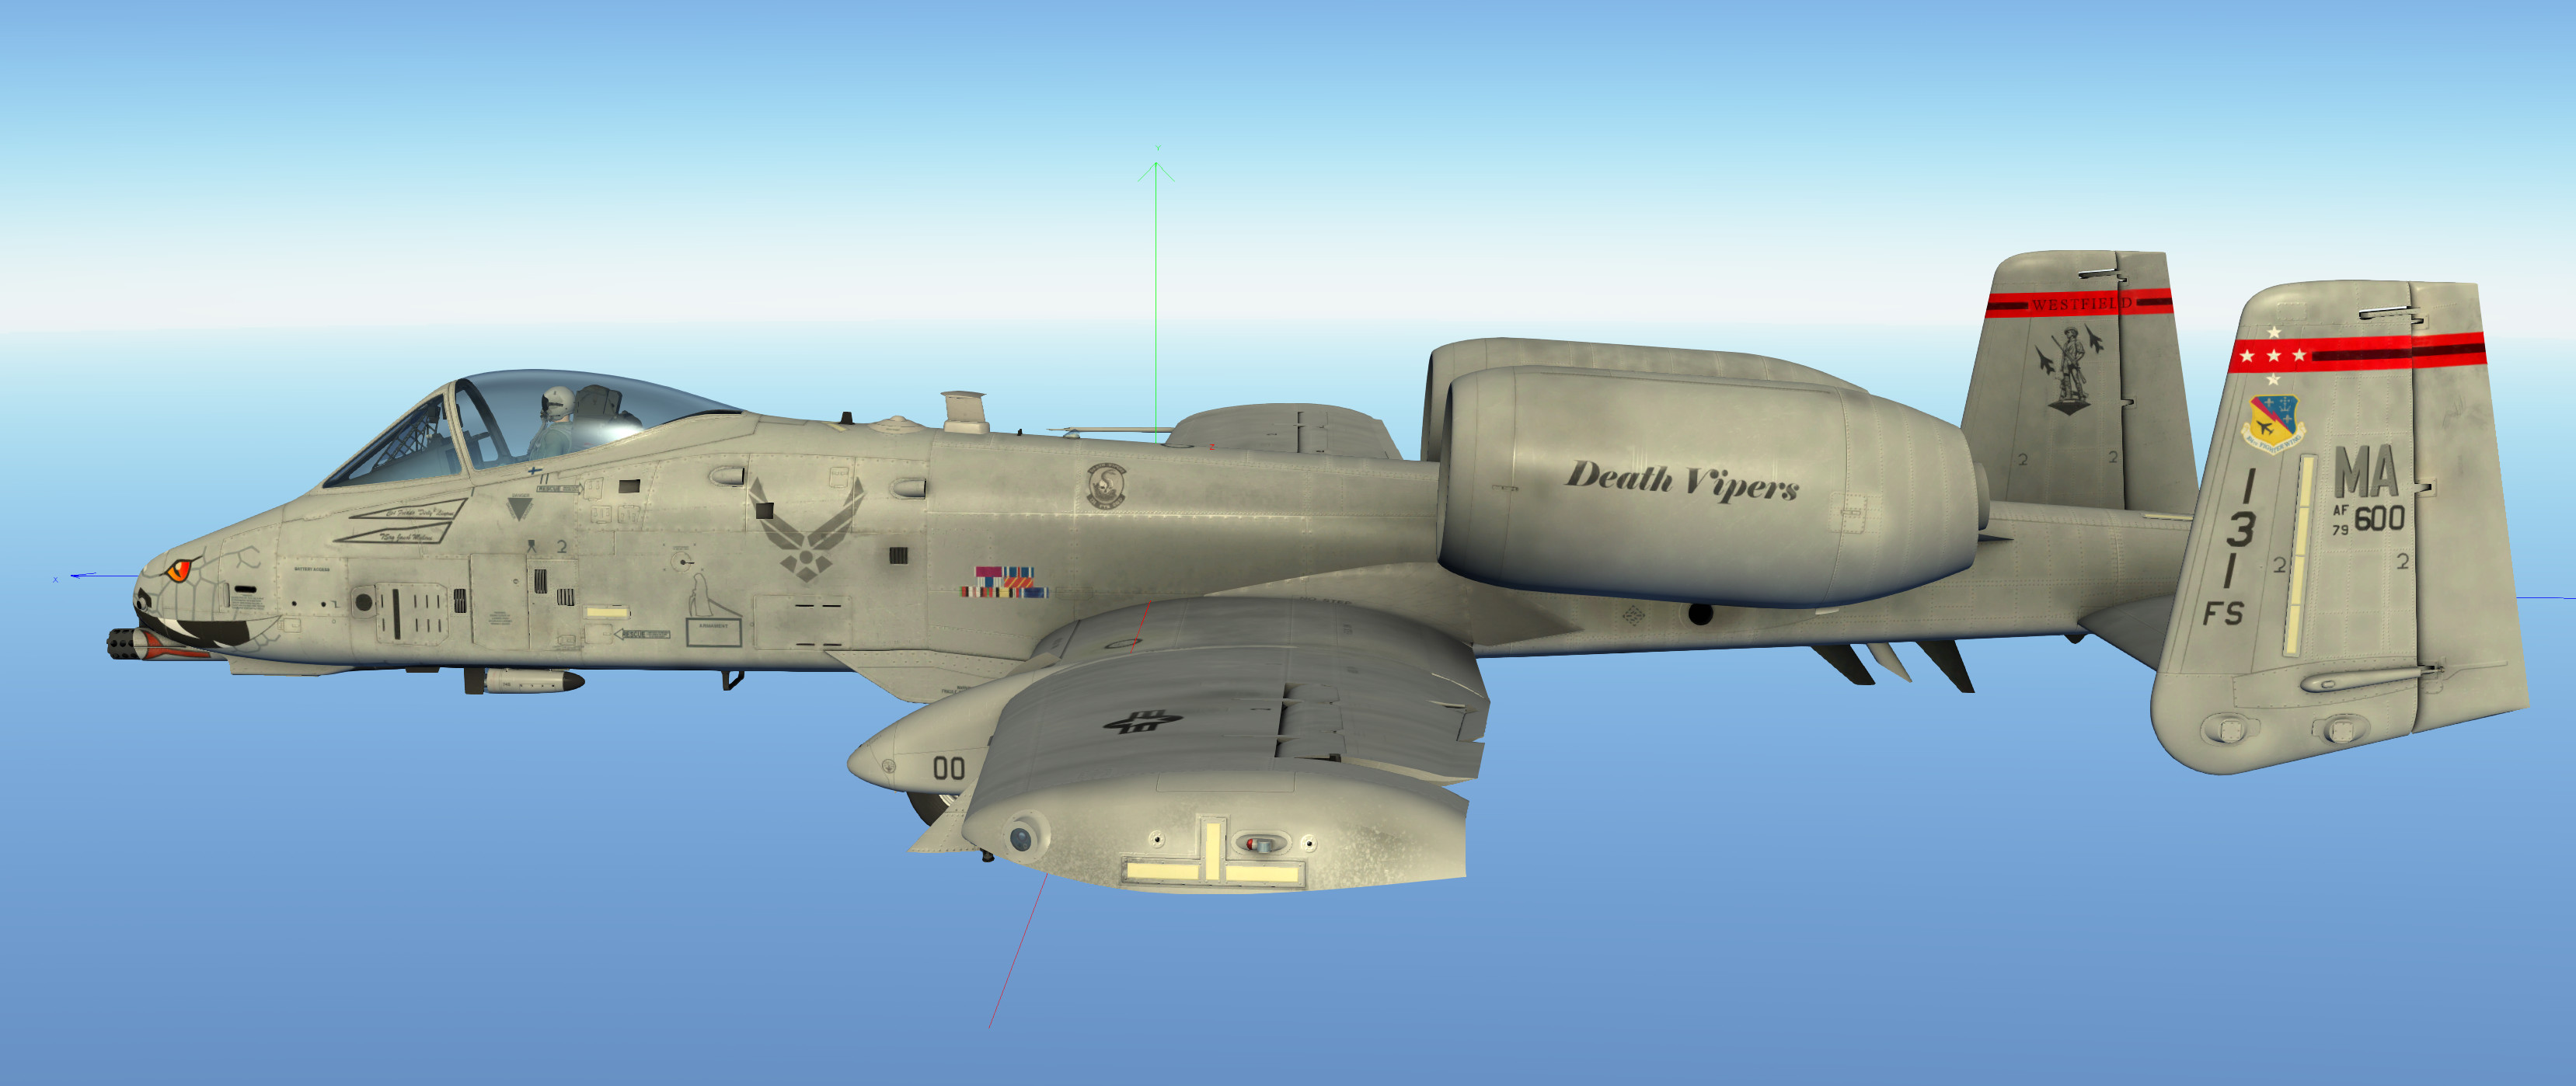 131st Fs Quot Death Vipers Quot Ma Ang Fictional A10c Skin